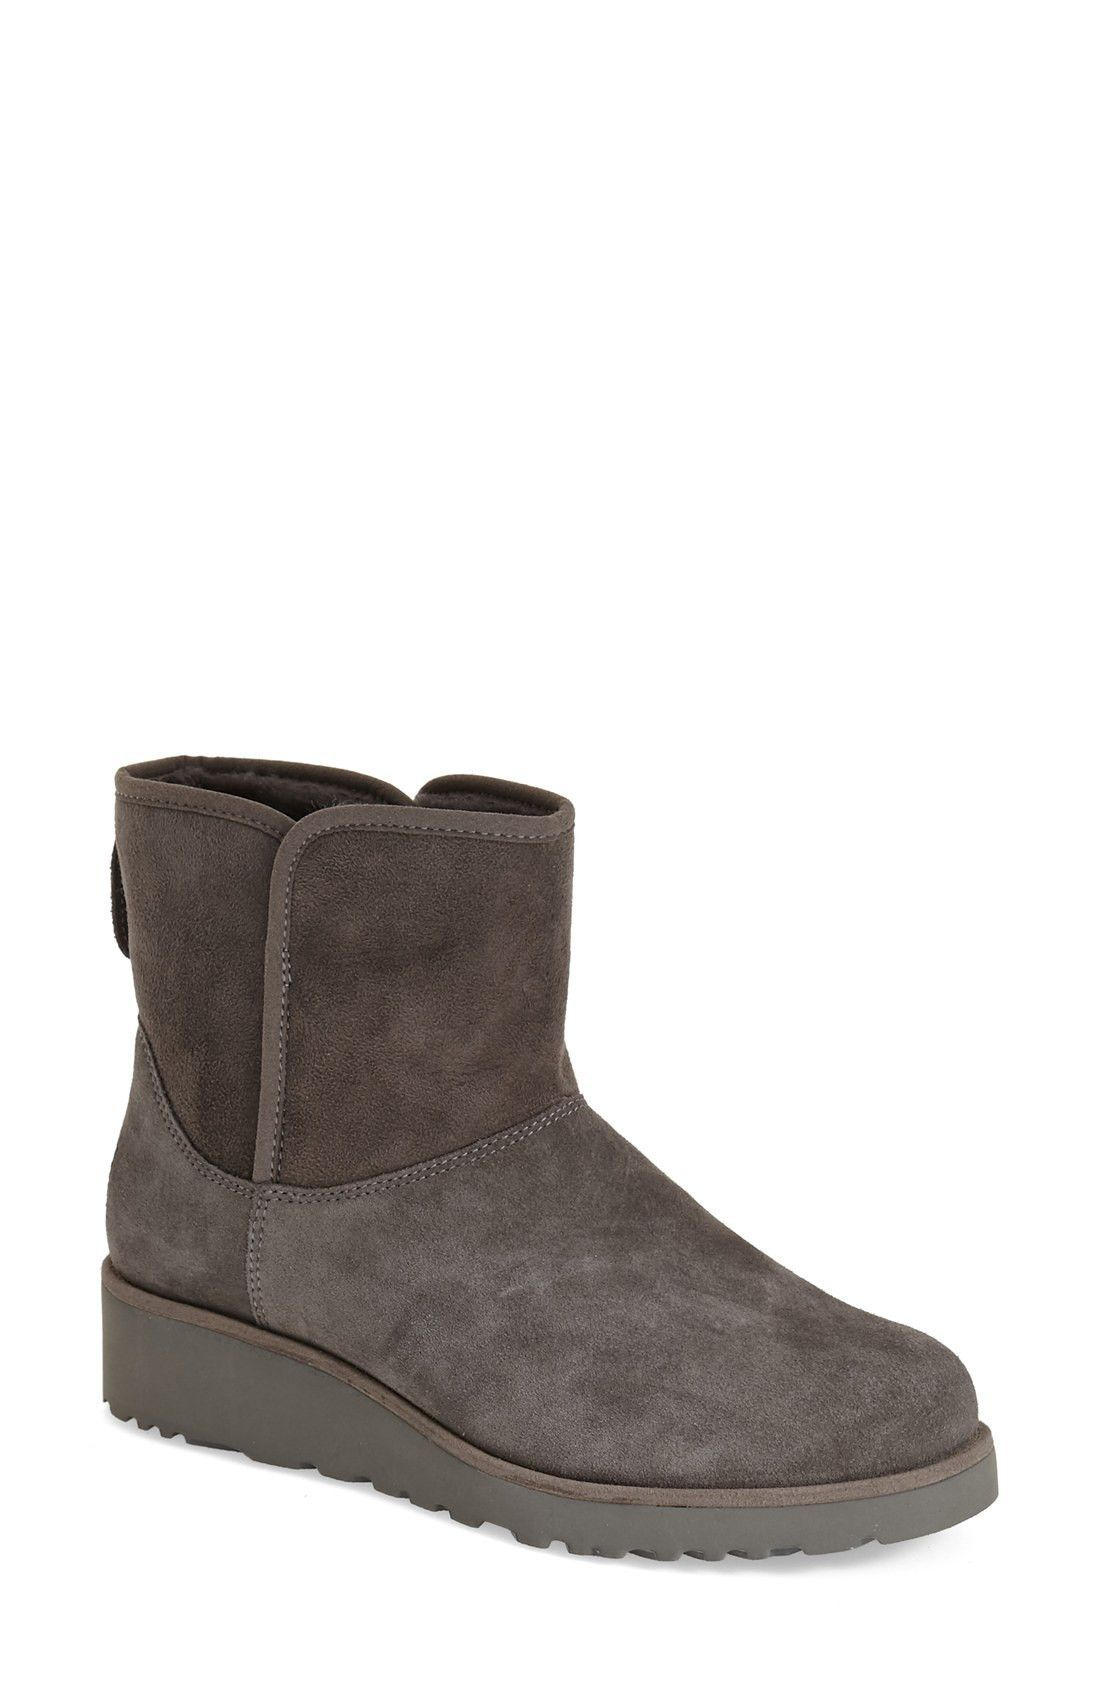 Womens Ugg Kristin - Classic Slim(TM) Water Resistant Mini Boot, Size 9 M - Grey forecasting